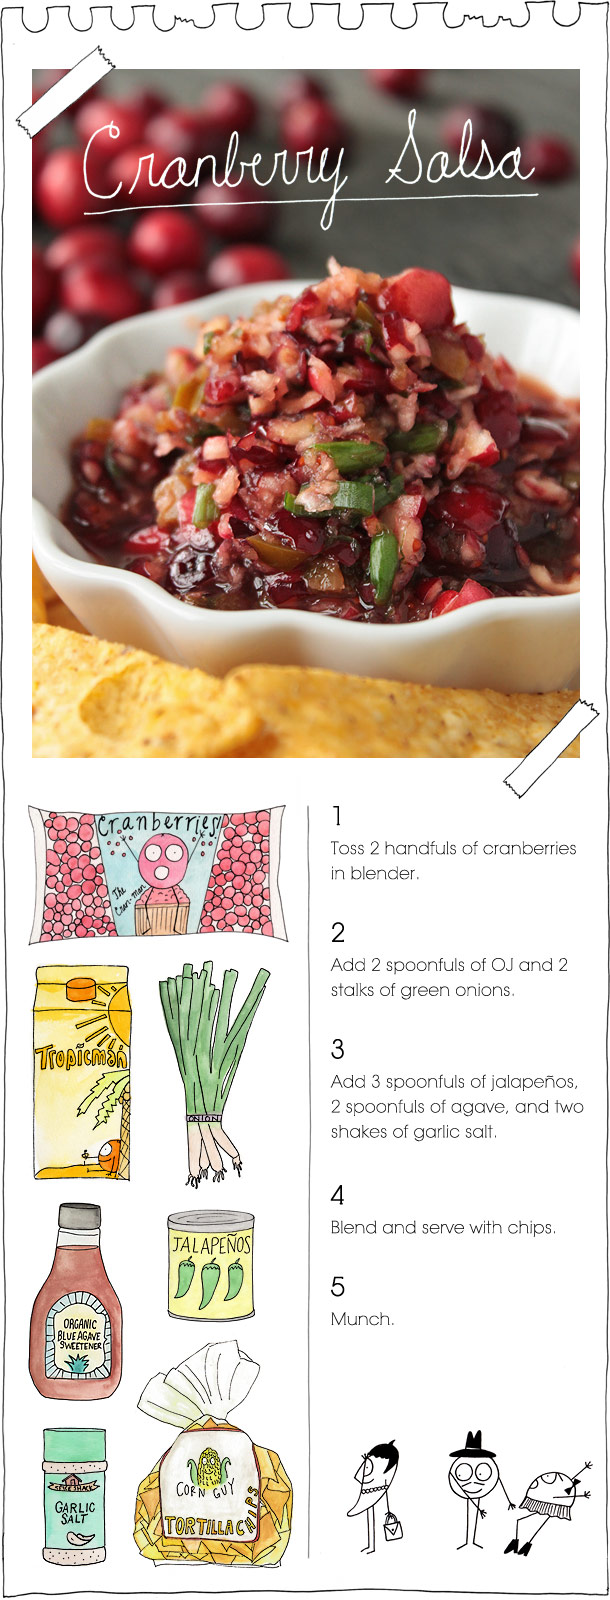 The Vegan Stoner's Cranberry Salsa